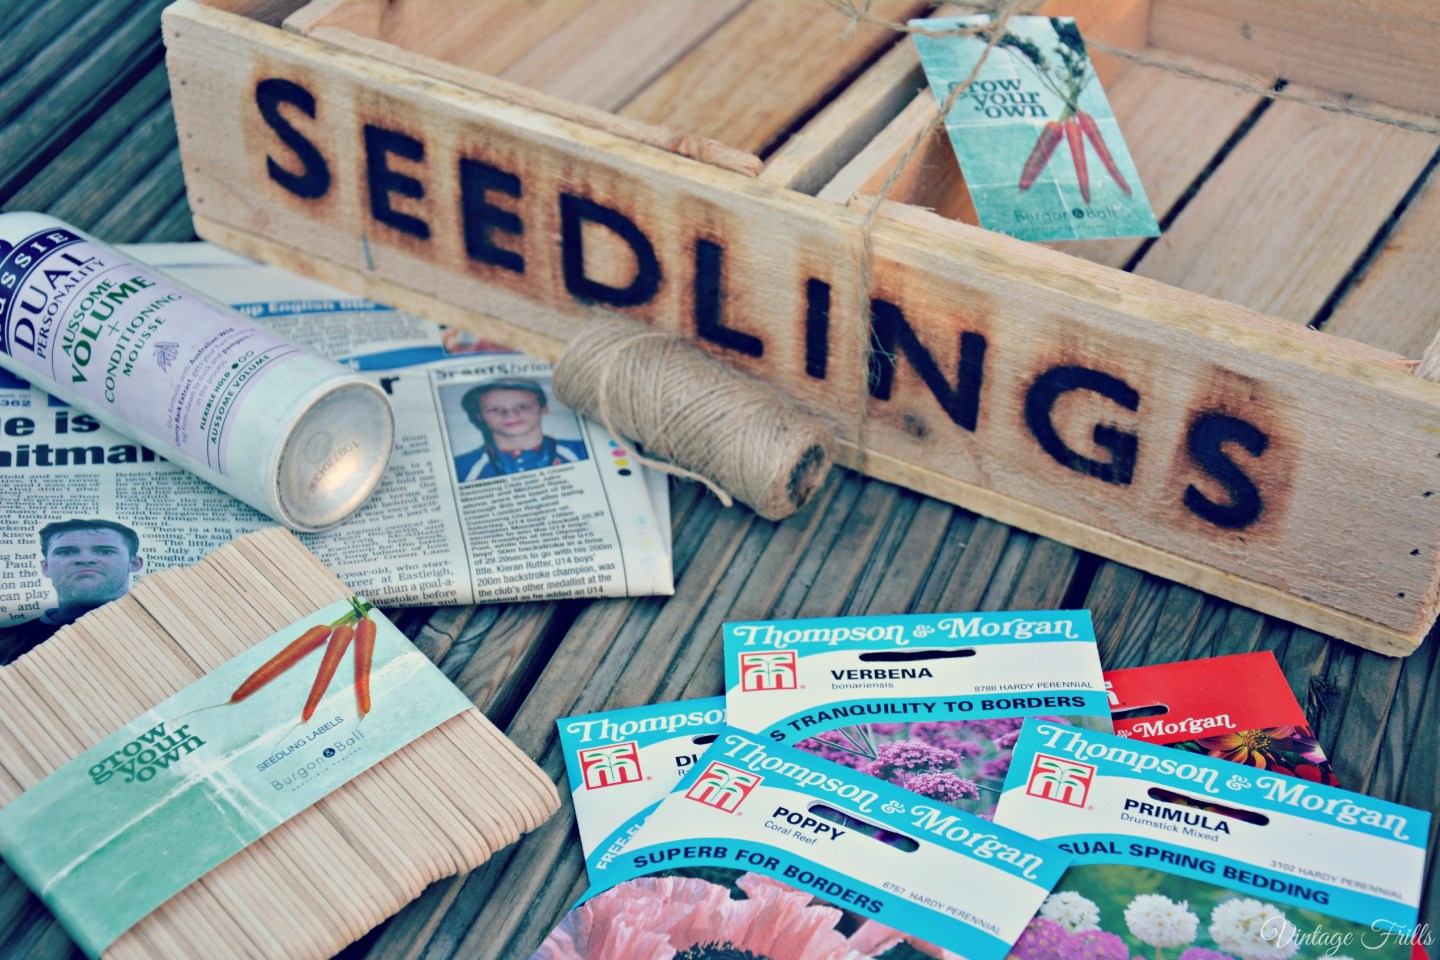 How to Make Newspaper Seed Pots